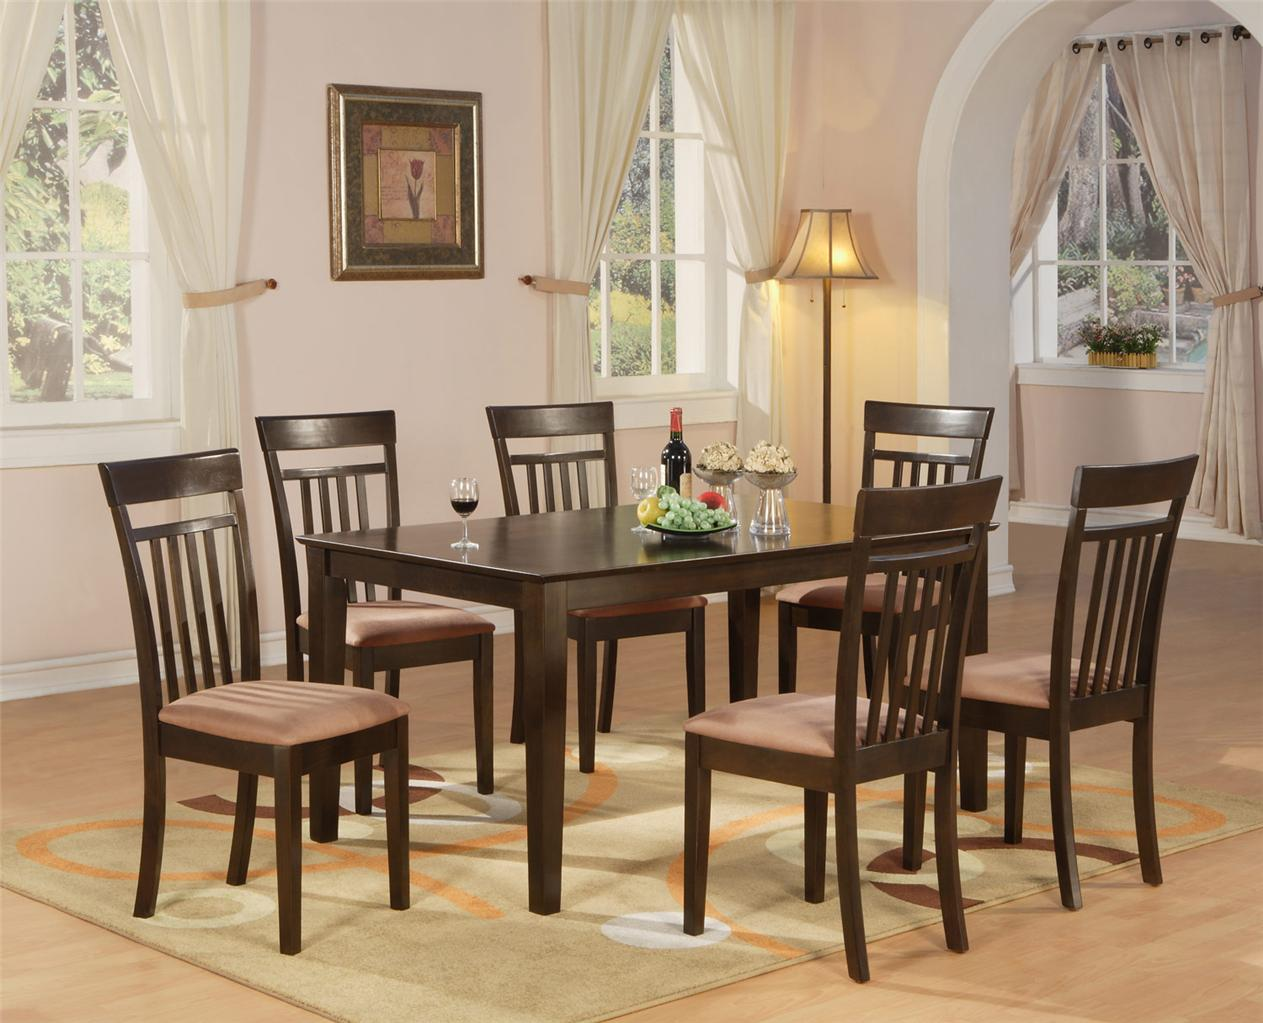 7 pc dining room dinette kitchen set table and 6 chairs ebay for Kitchen dining room chairs